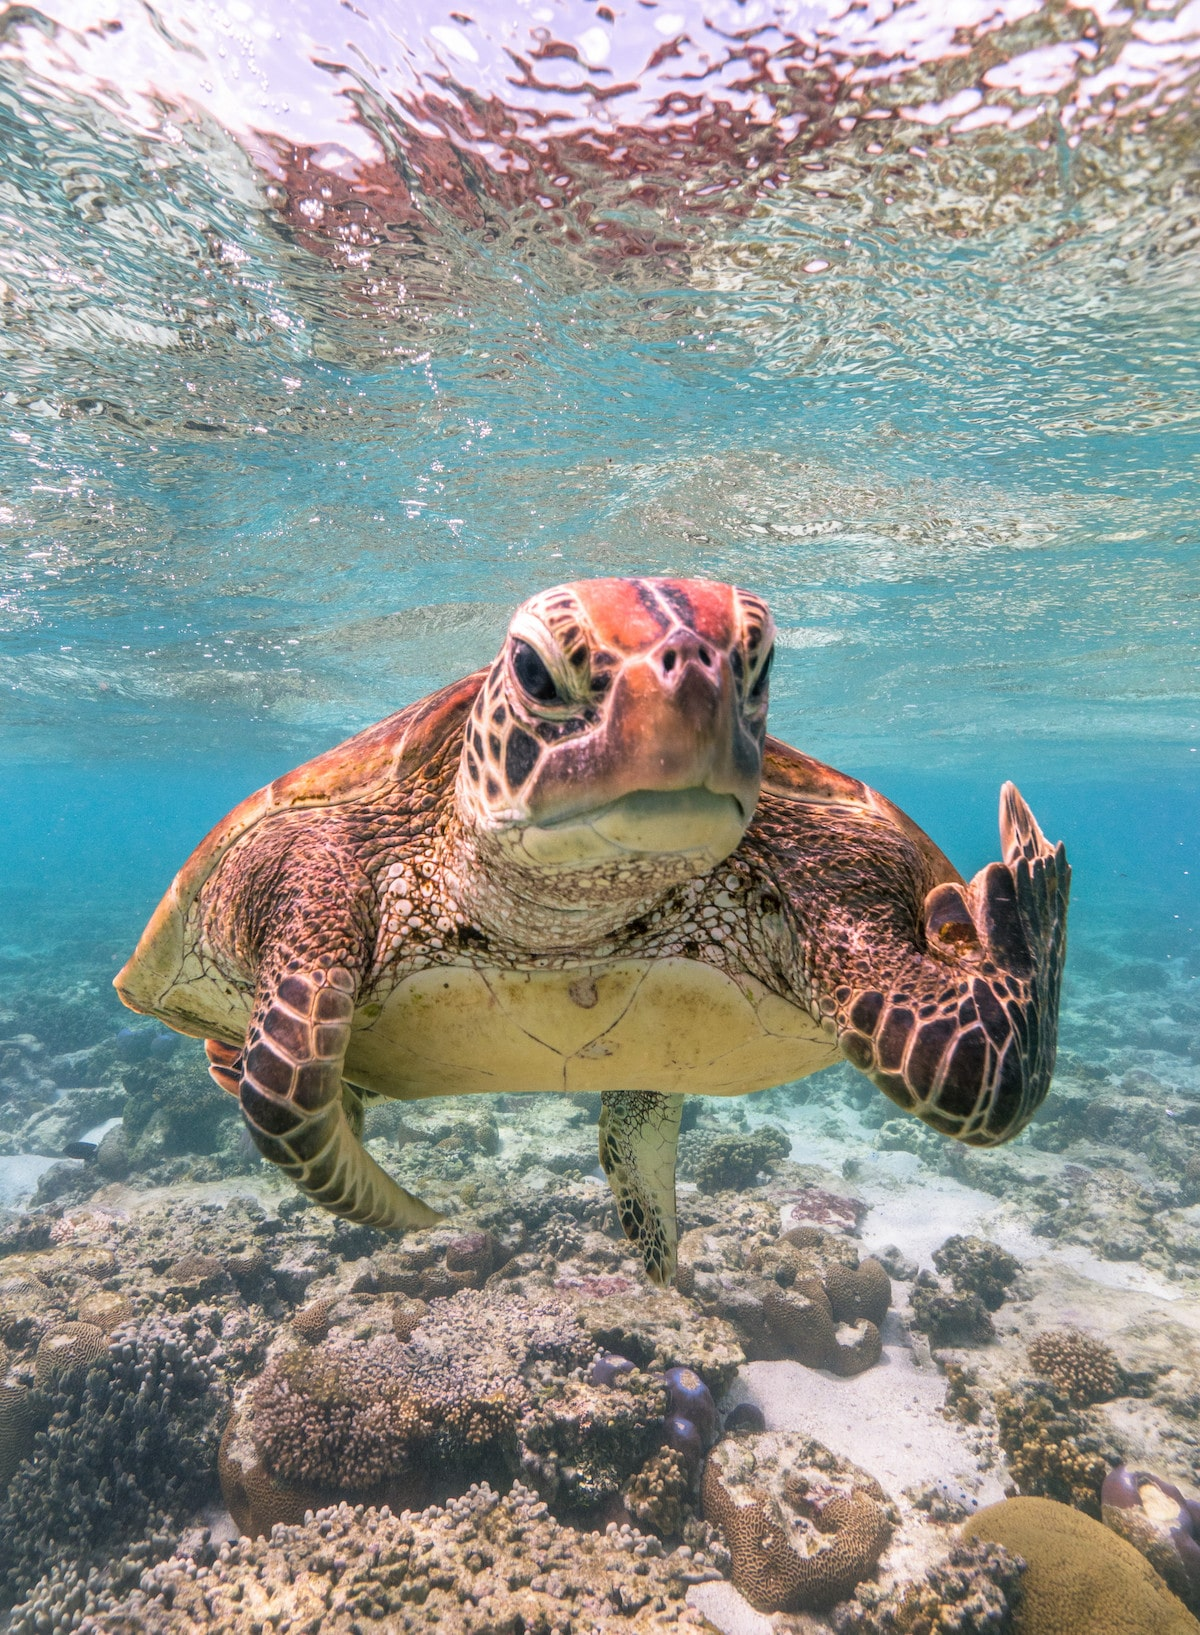 Turtle that Looks Like It's Flipping the Bird